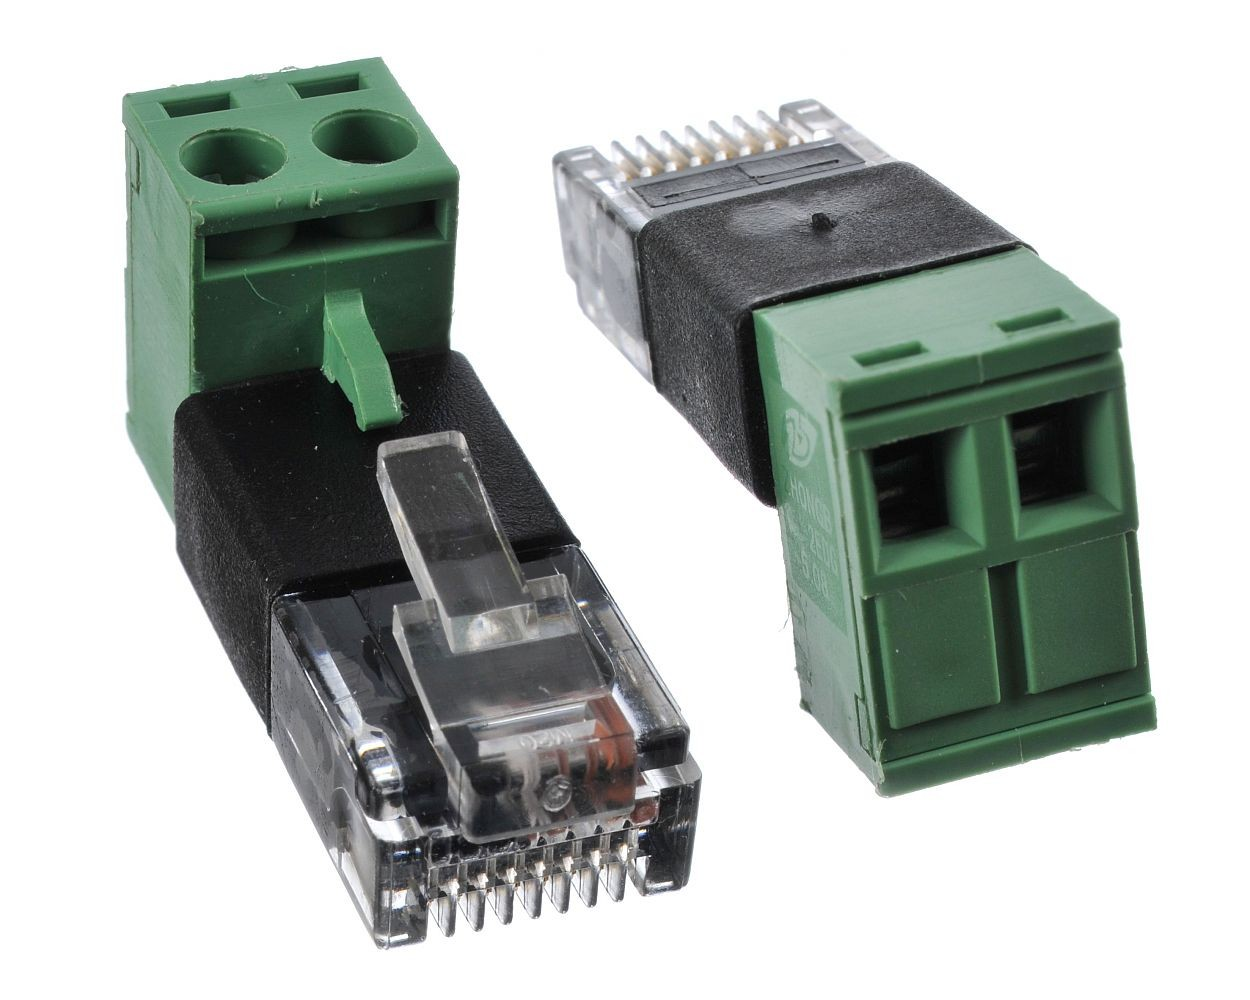 hight resolution of rj45 modular plug to screw terminal wire adapter for poe cat5 ethernet cable wiring diagram rj45 cable